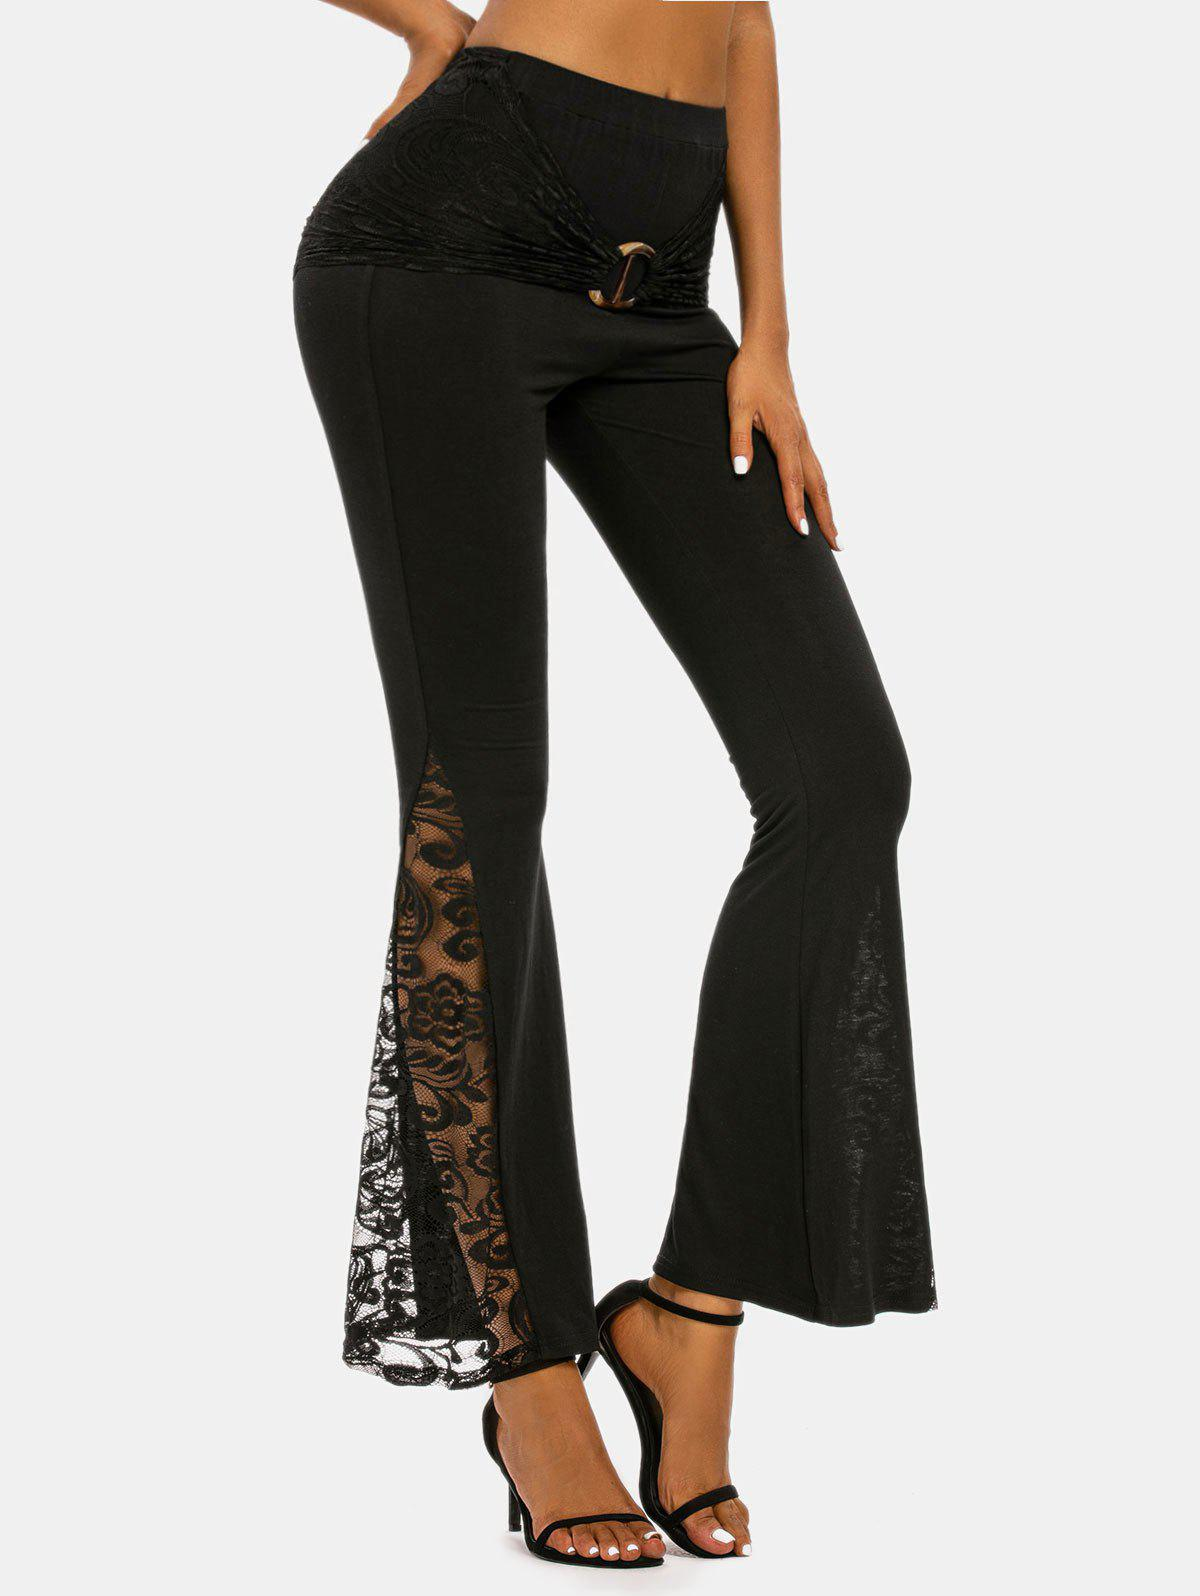 Chic O-ring Ruched Lace Insert Flare Pants